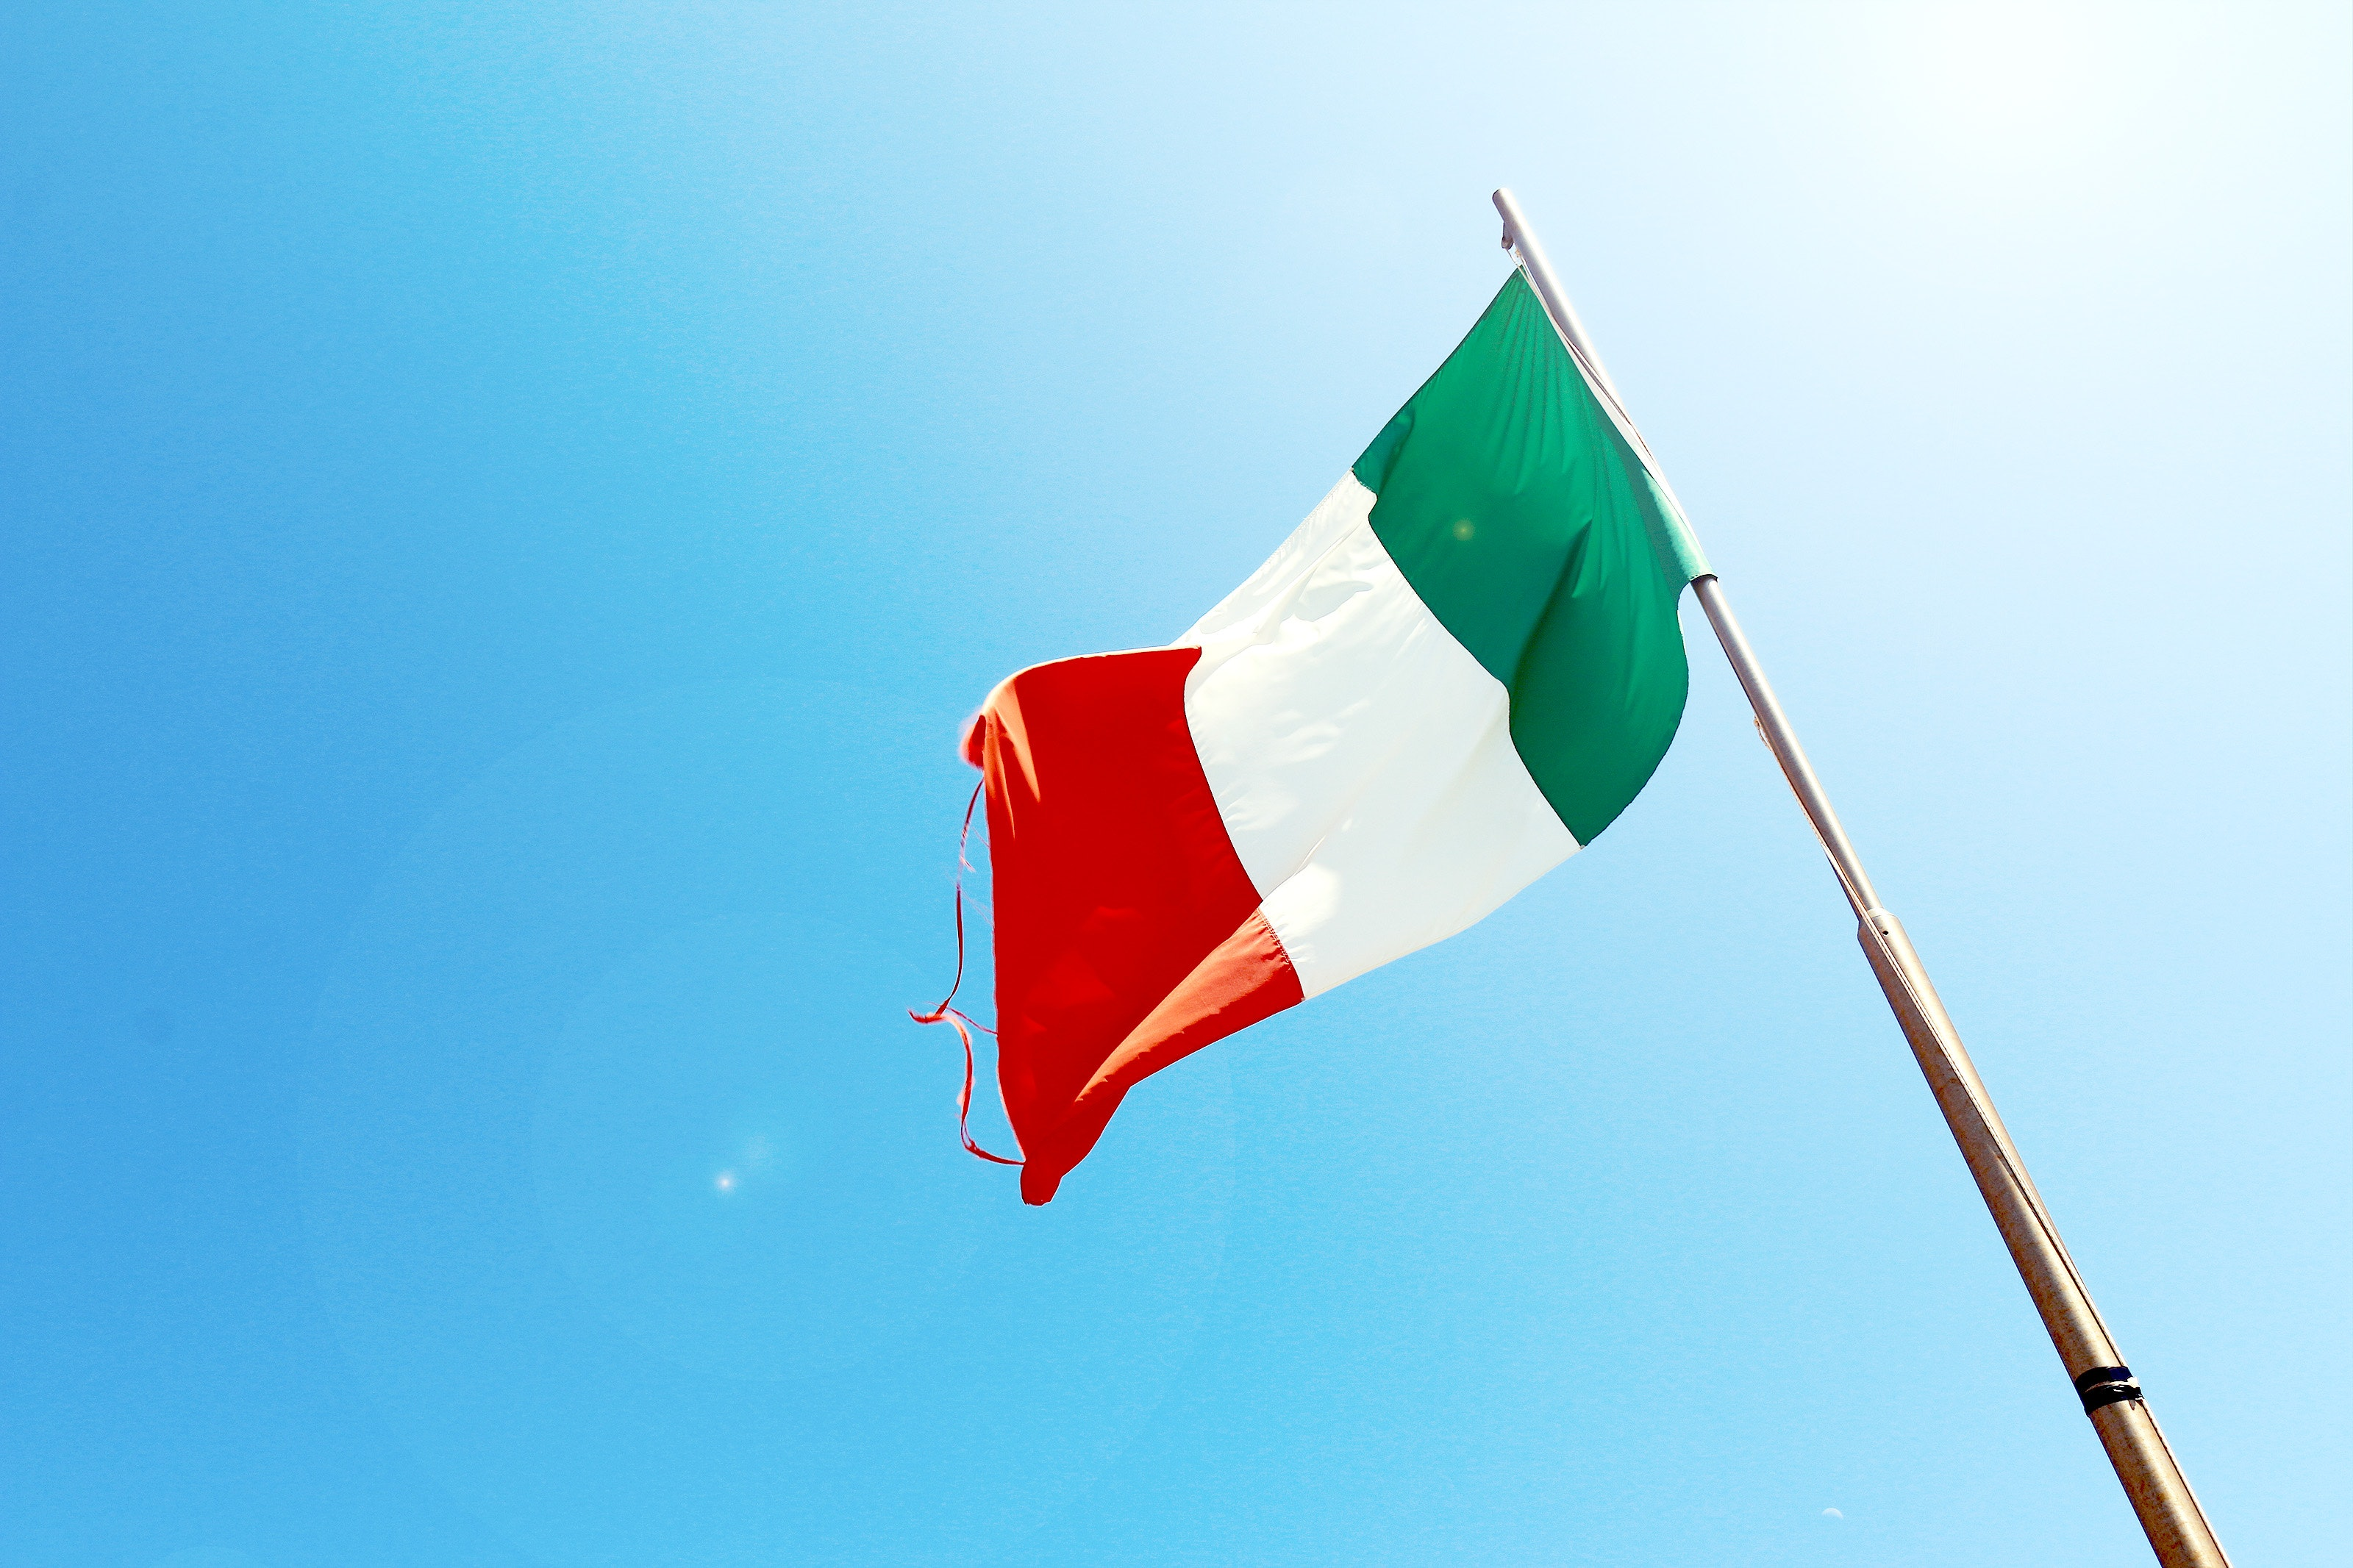 italy-makersvalley-manufacturing